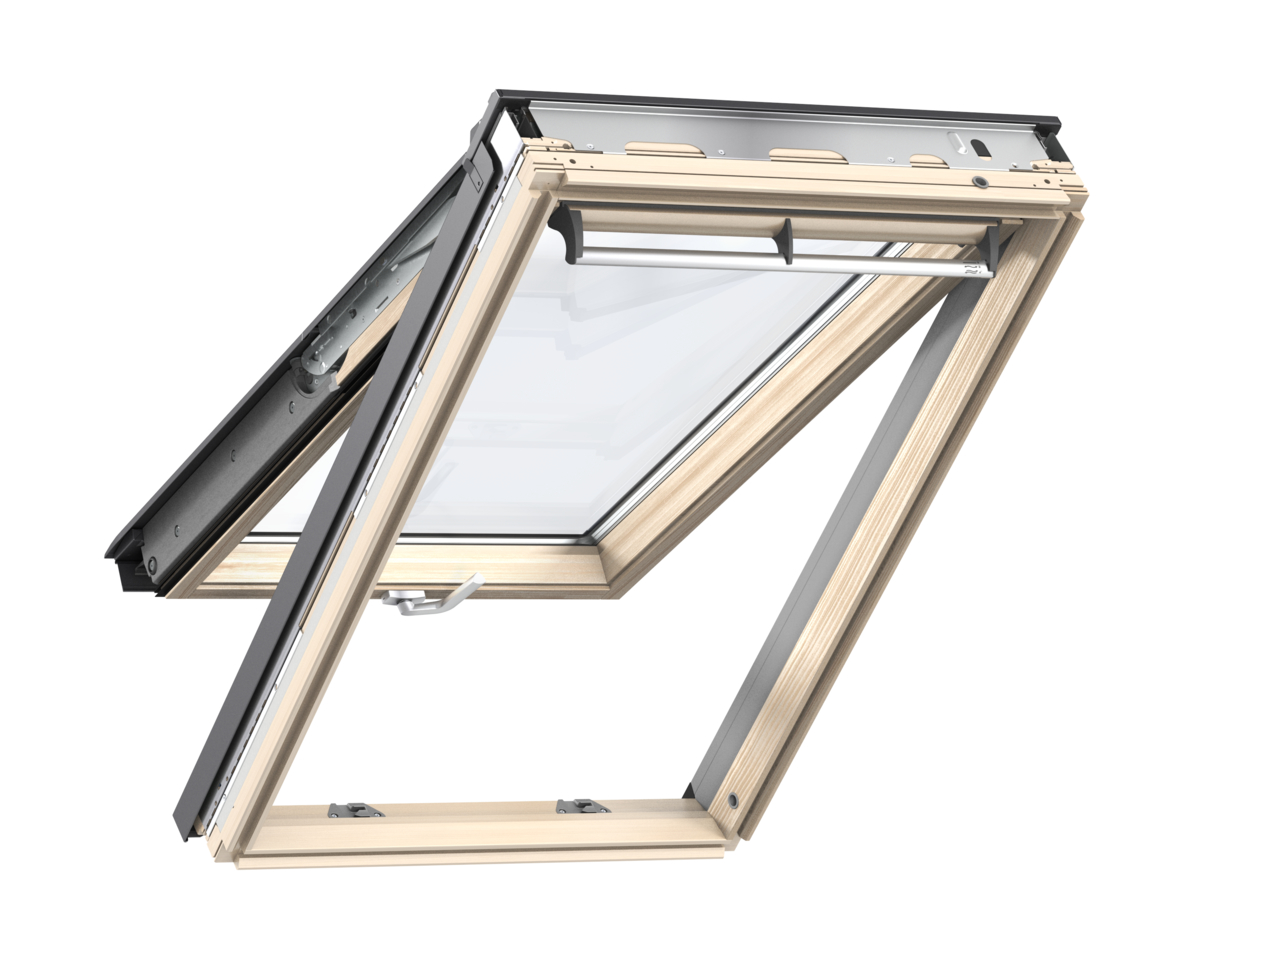 Velux GPL MK06 780 x 1180mm Top Hung Standard 70Pane Roof Window - Pine